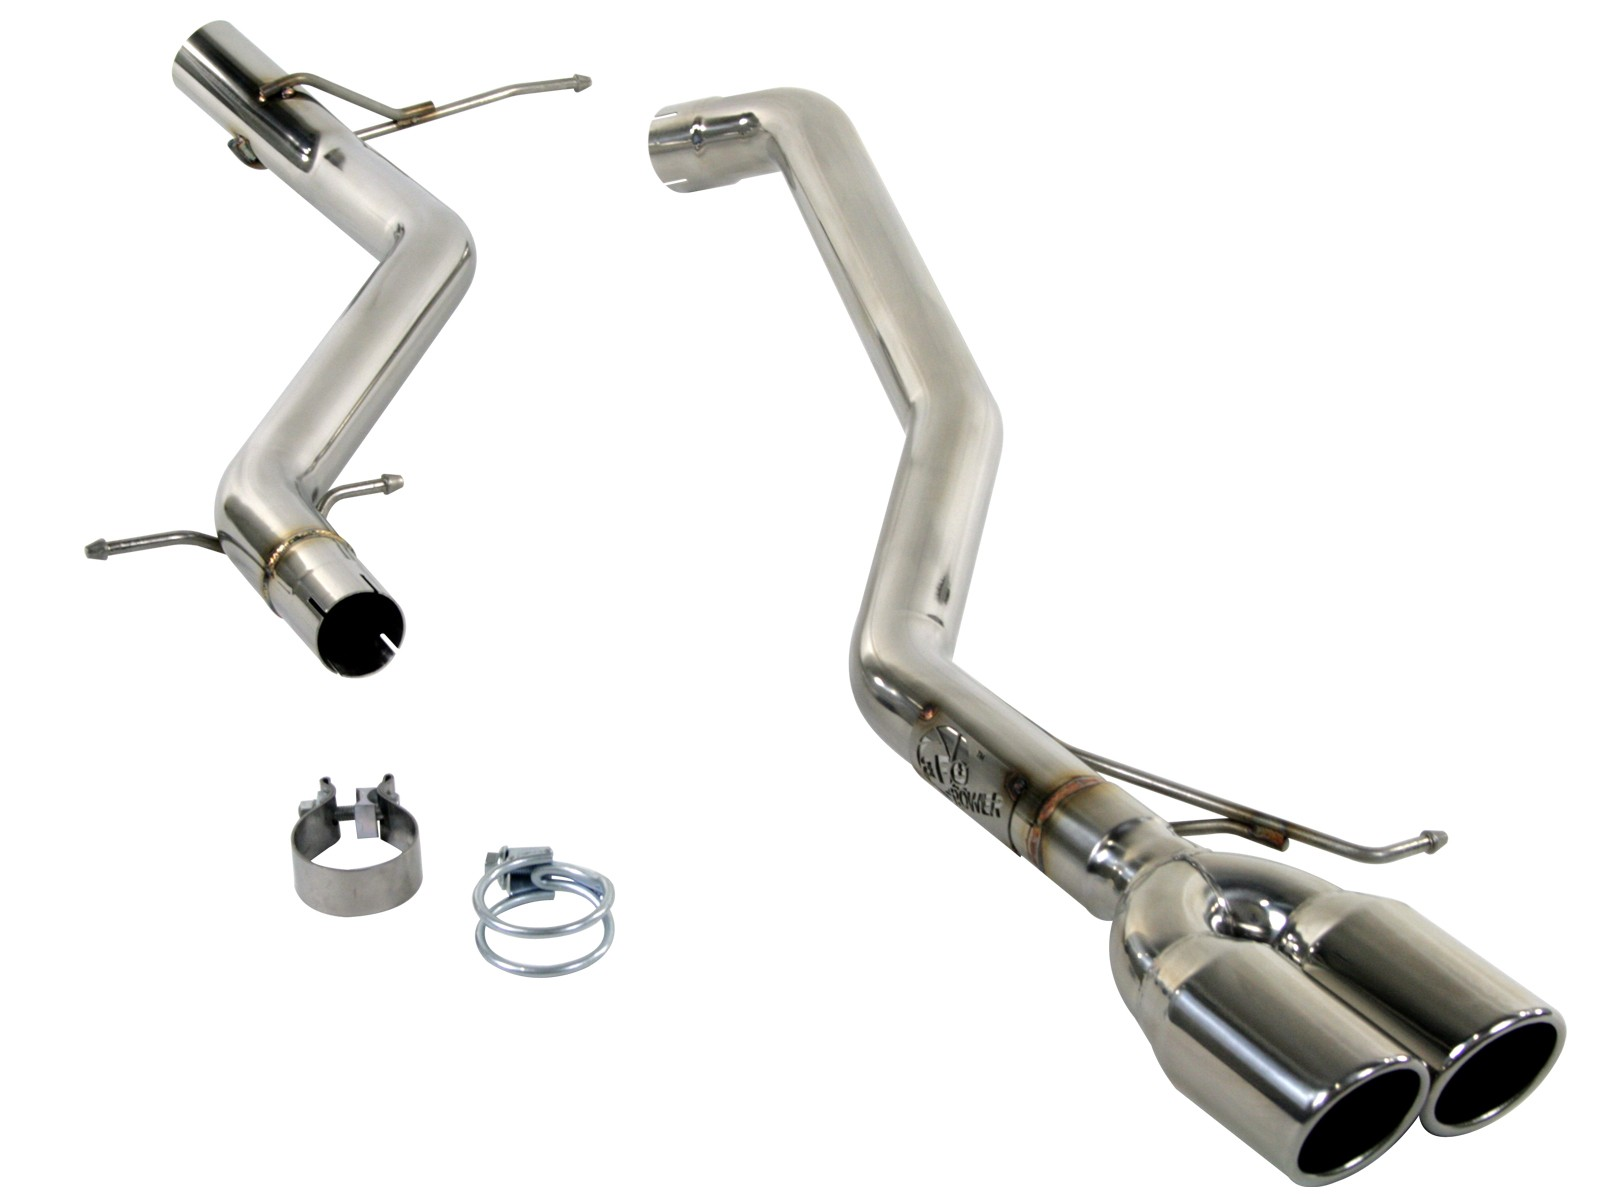 """aFe POWER 49-36401 MACH Force-Xp 2-1/2"""" 304 Stainless Steel Cat-Back Exhaust System"""